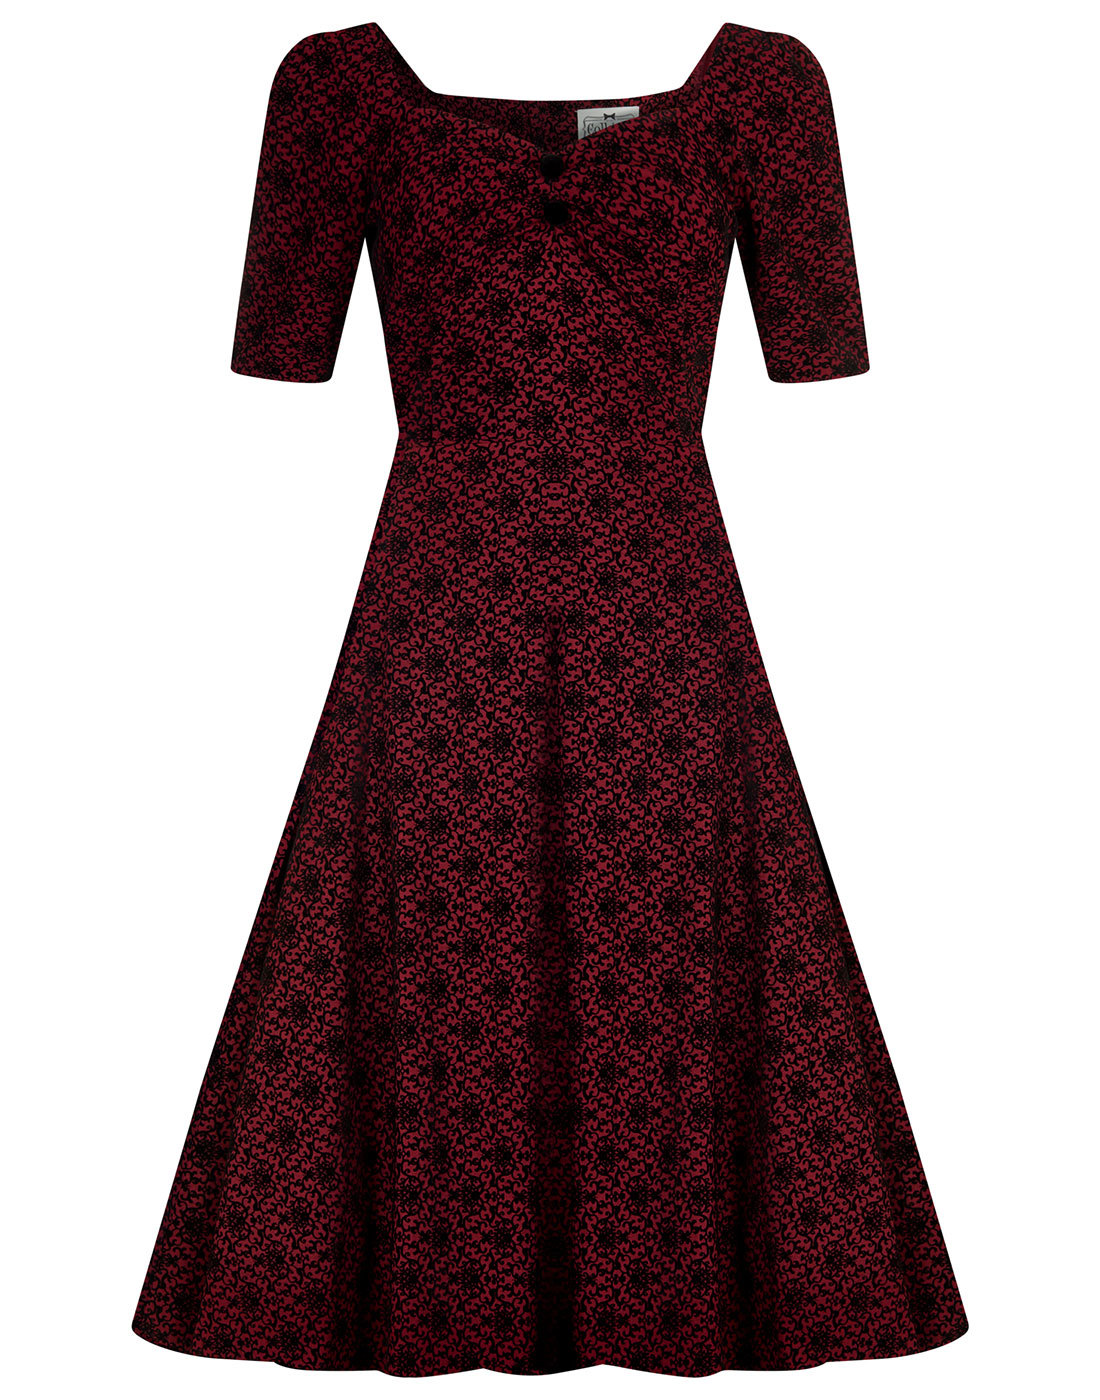 Dolores COLLECTIF Vintage 1950s Brocade Doll Dress